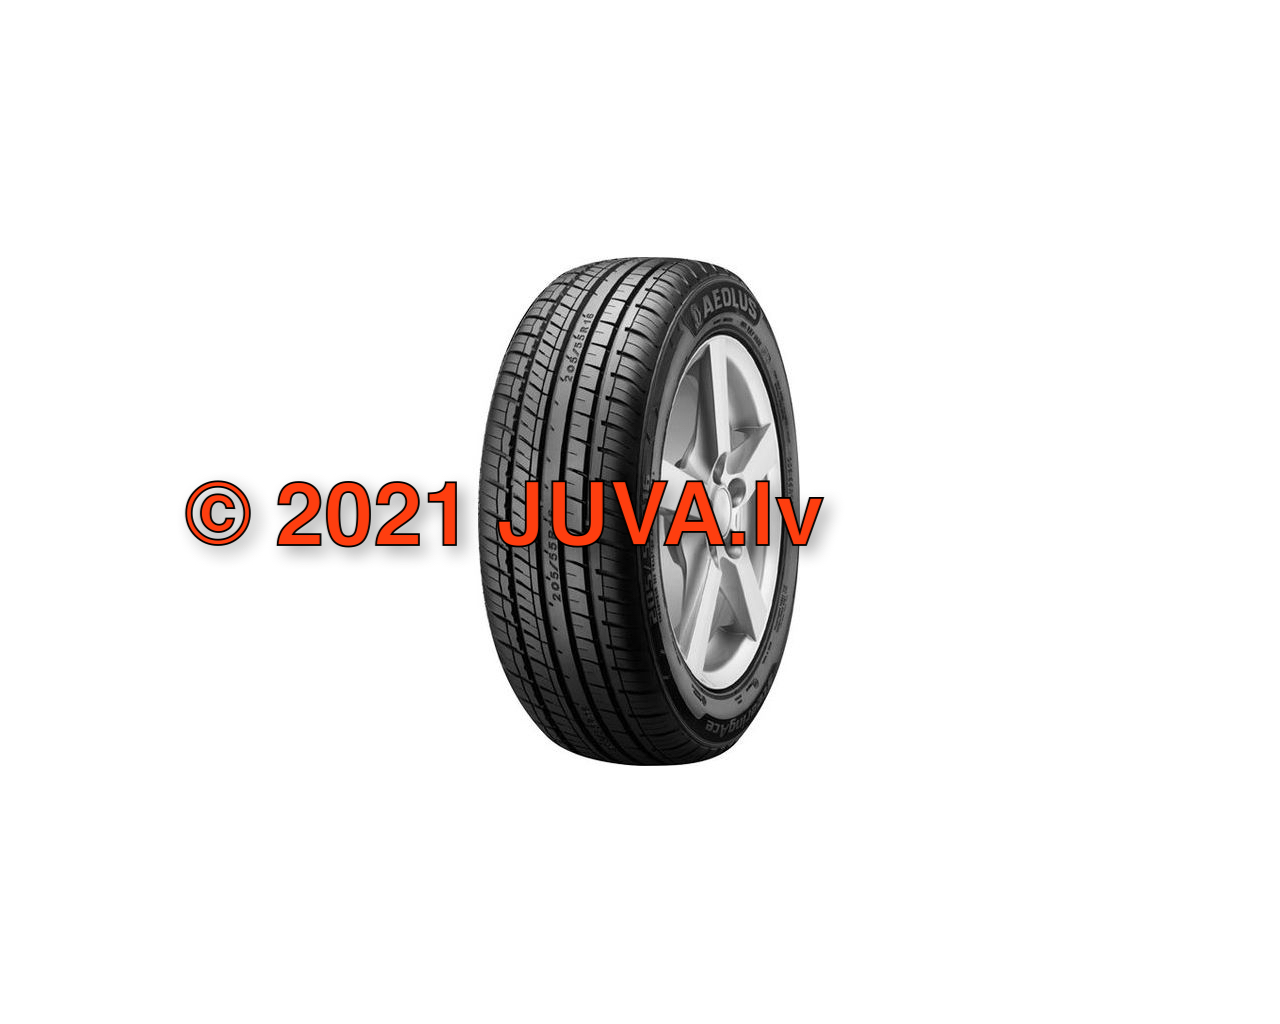 Aeolus AU01 Steering Ace Tire